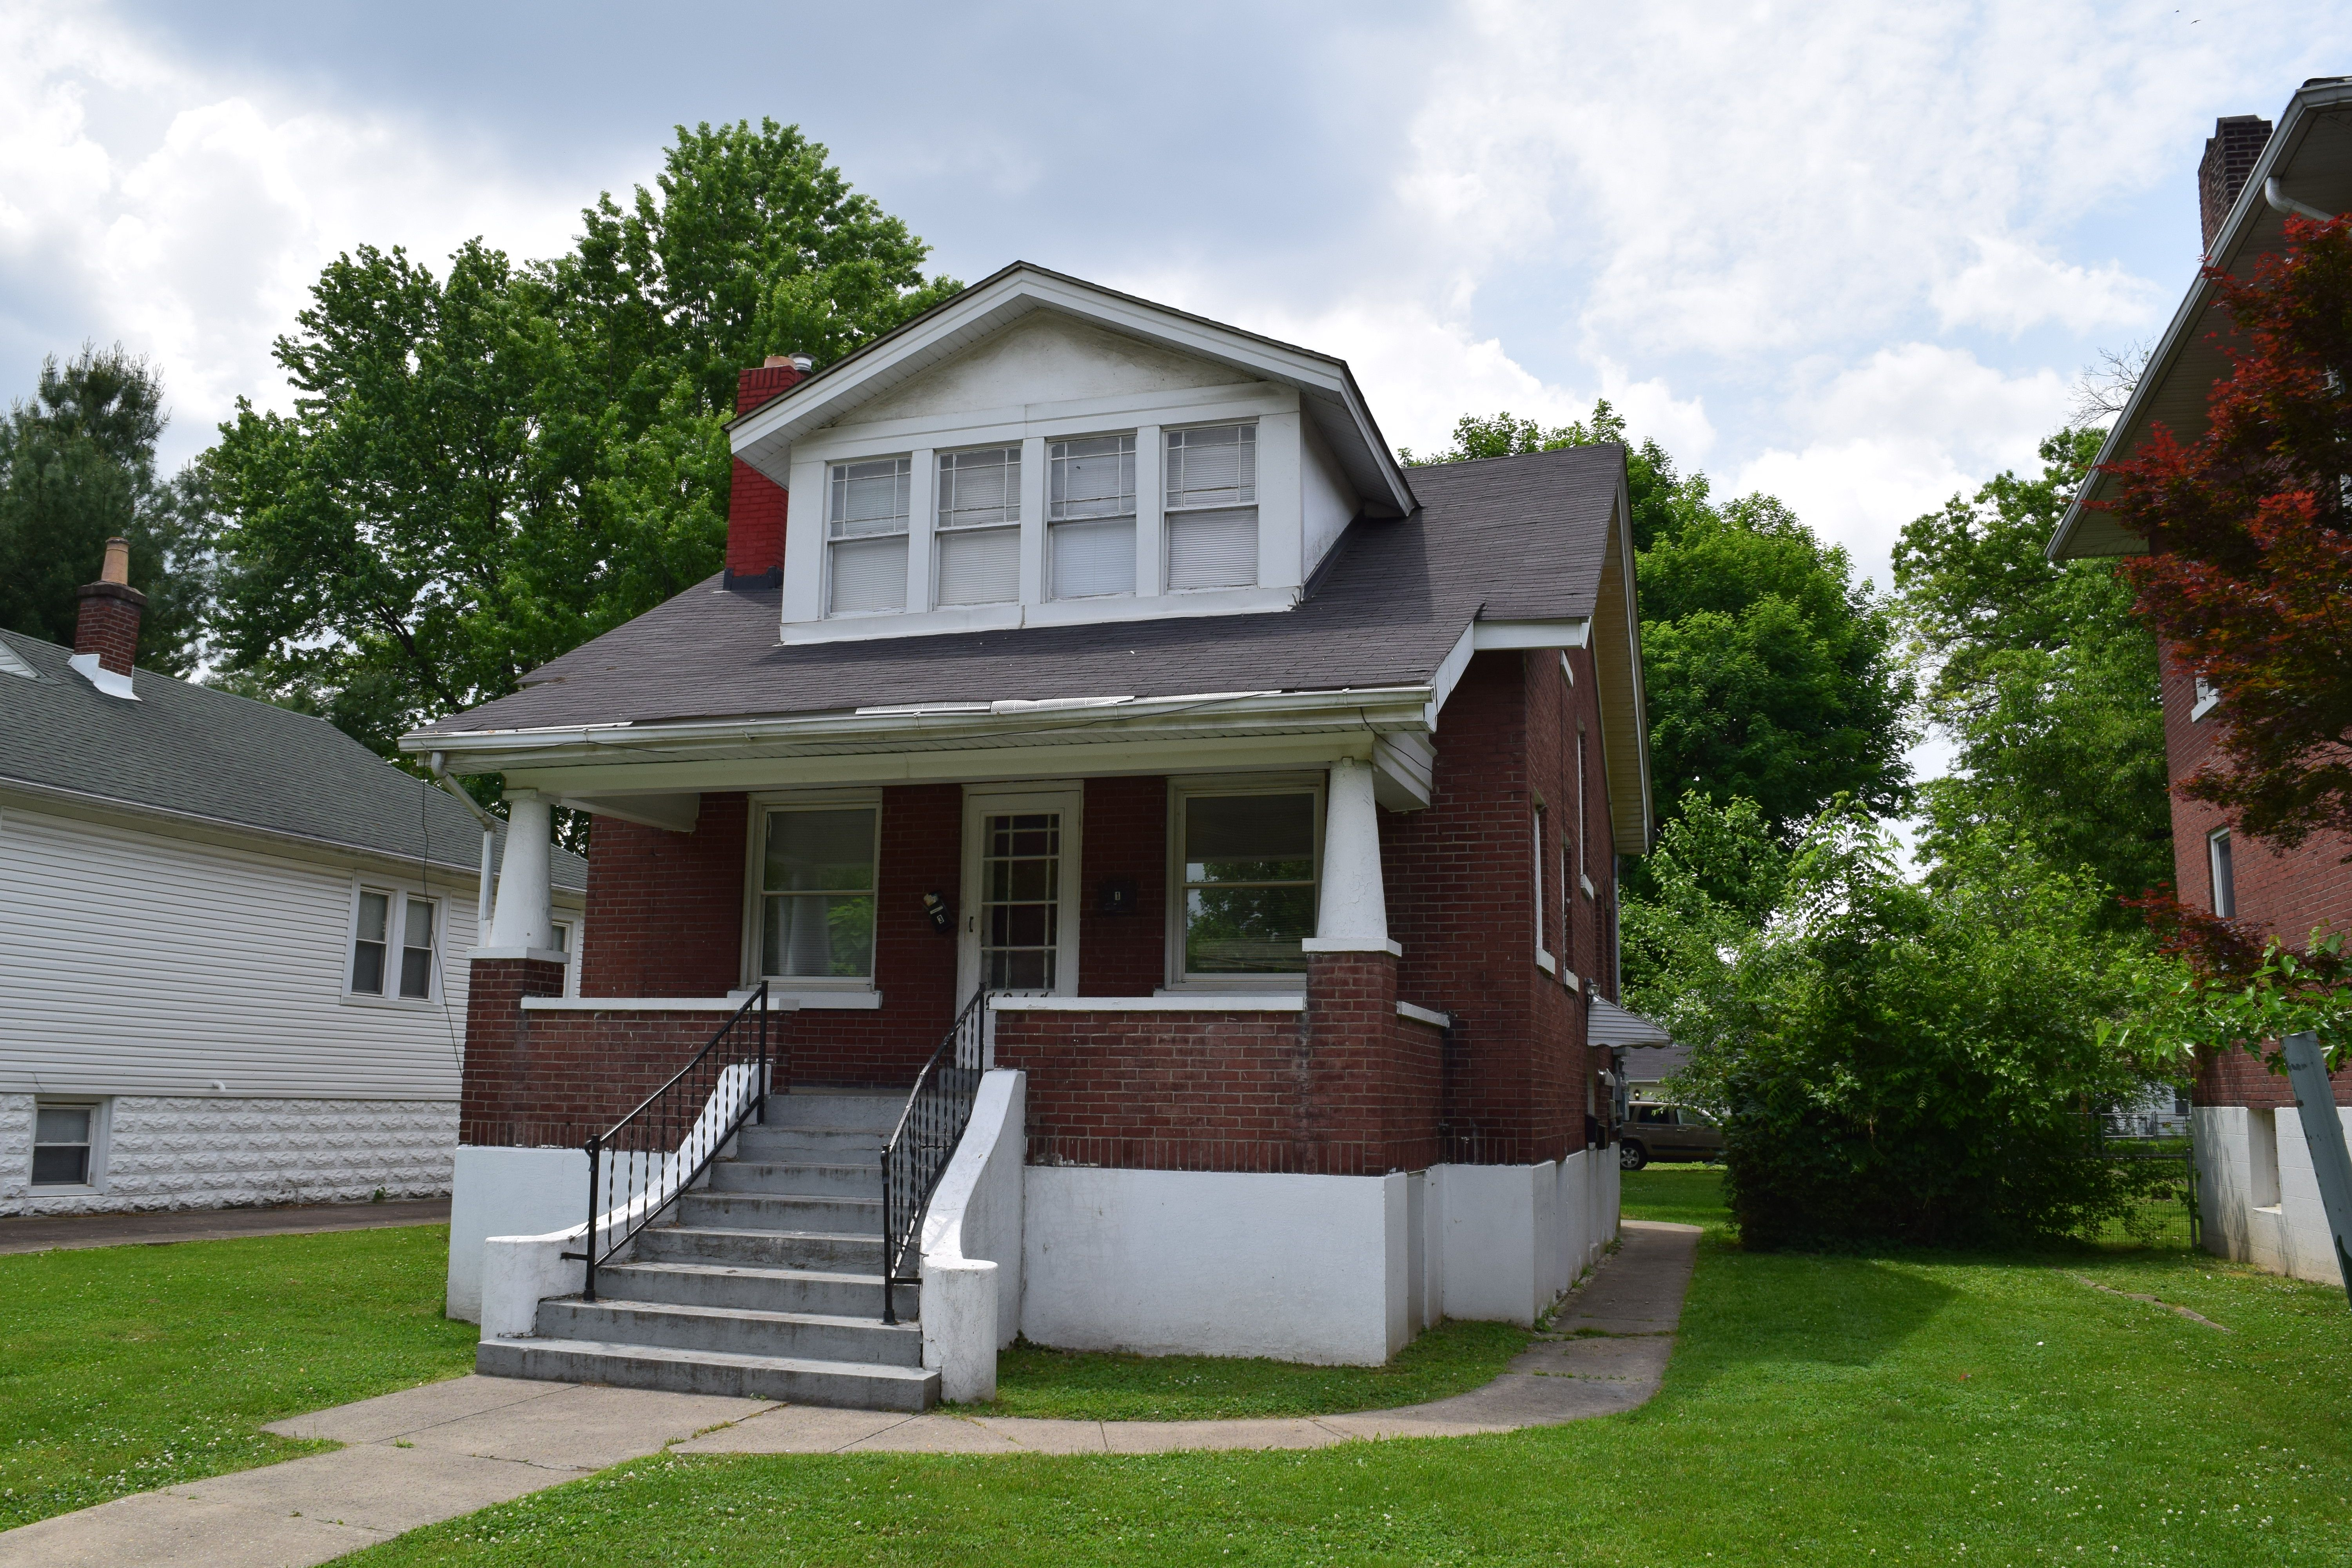 NEW LISTING! 4214 Southern Parkway Louisville Ky 40214. 4